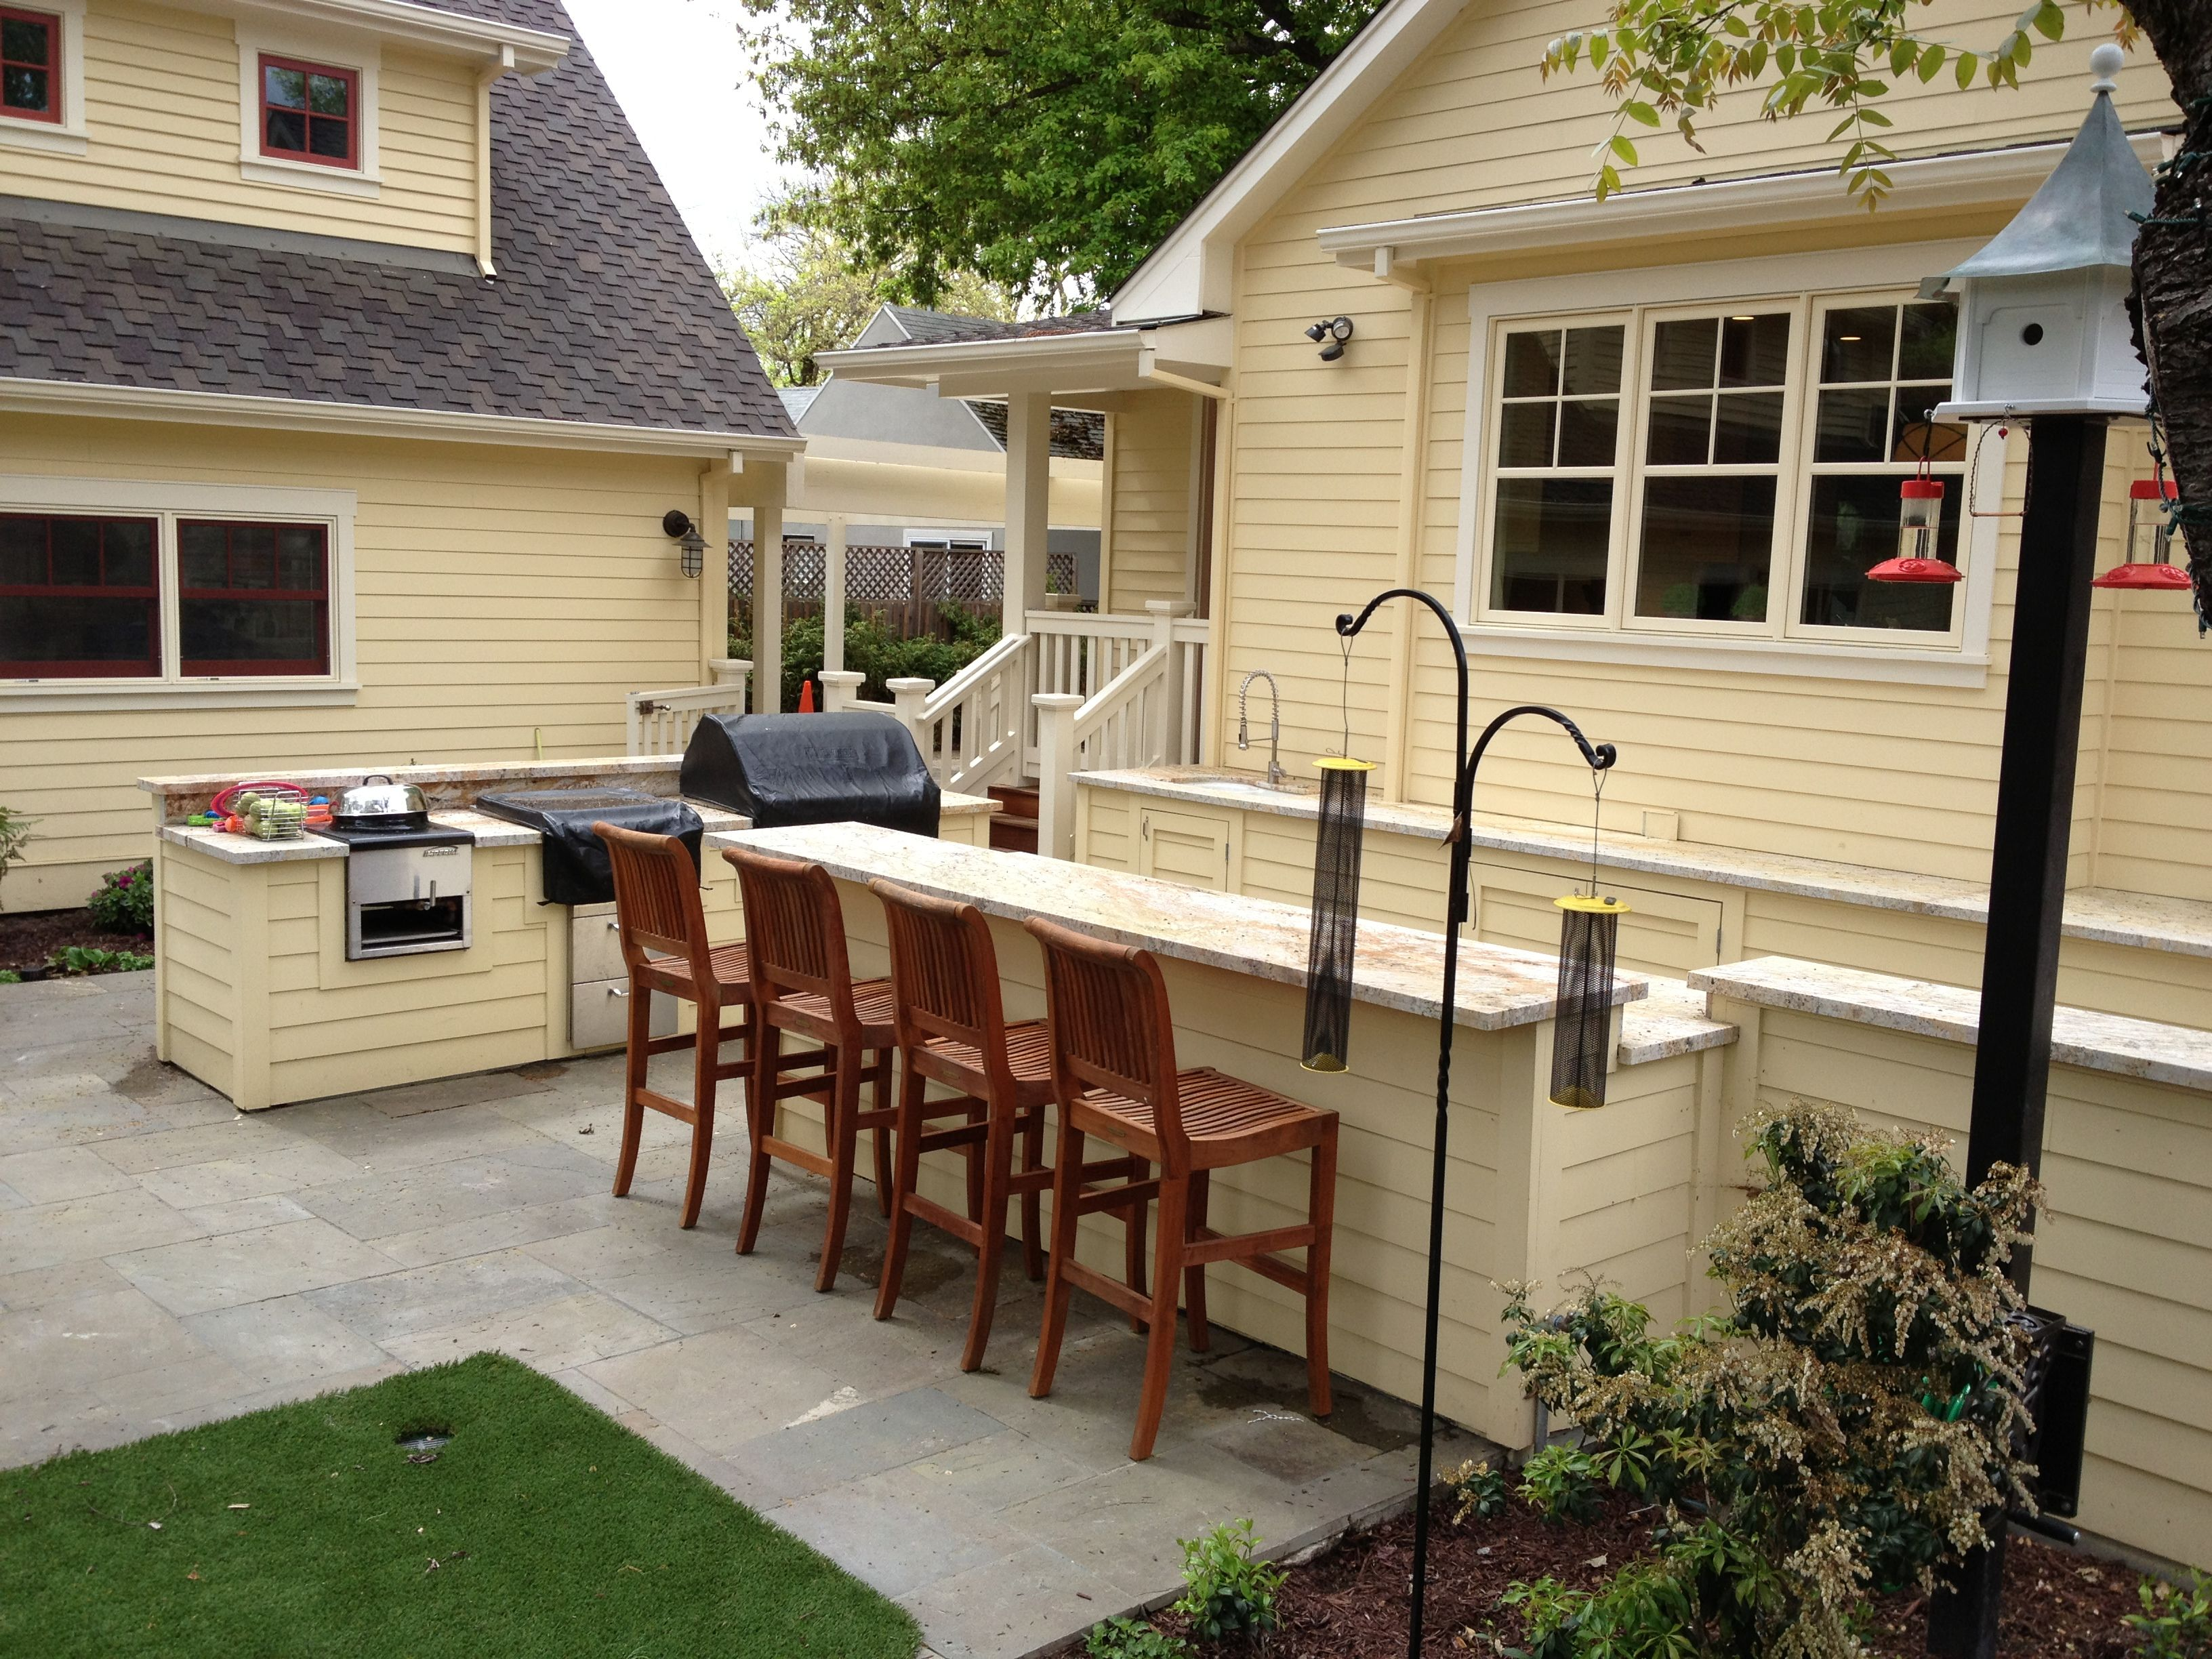 Outdoor Kitchen Counter Siding To Match House Siding Outdoor Kitchen Farmhouse Style House Diy Outdoor